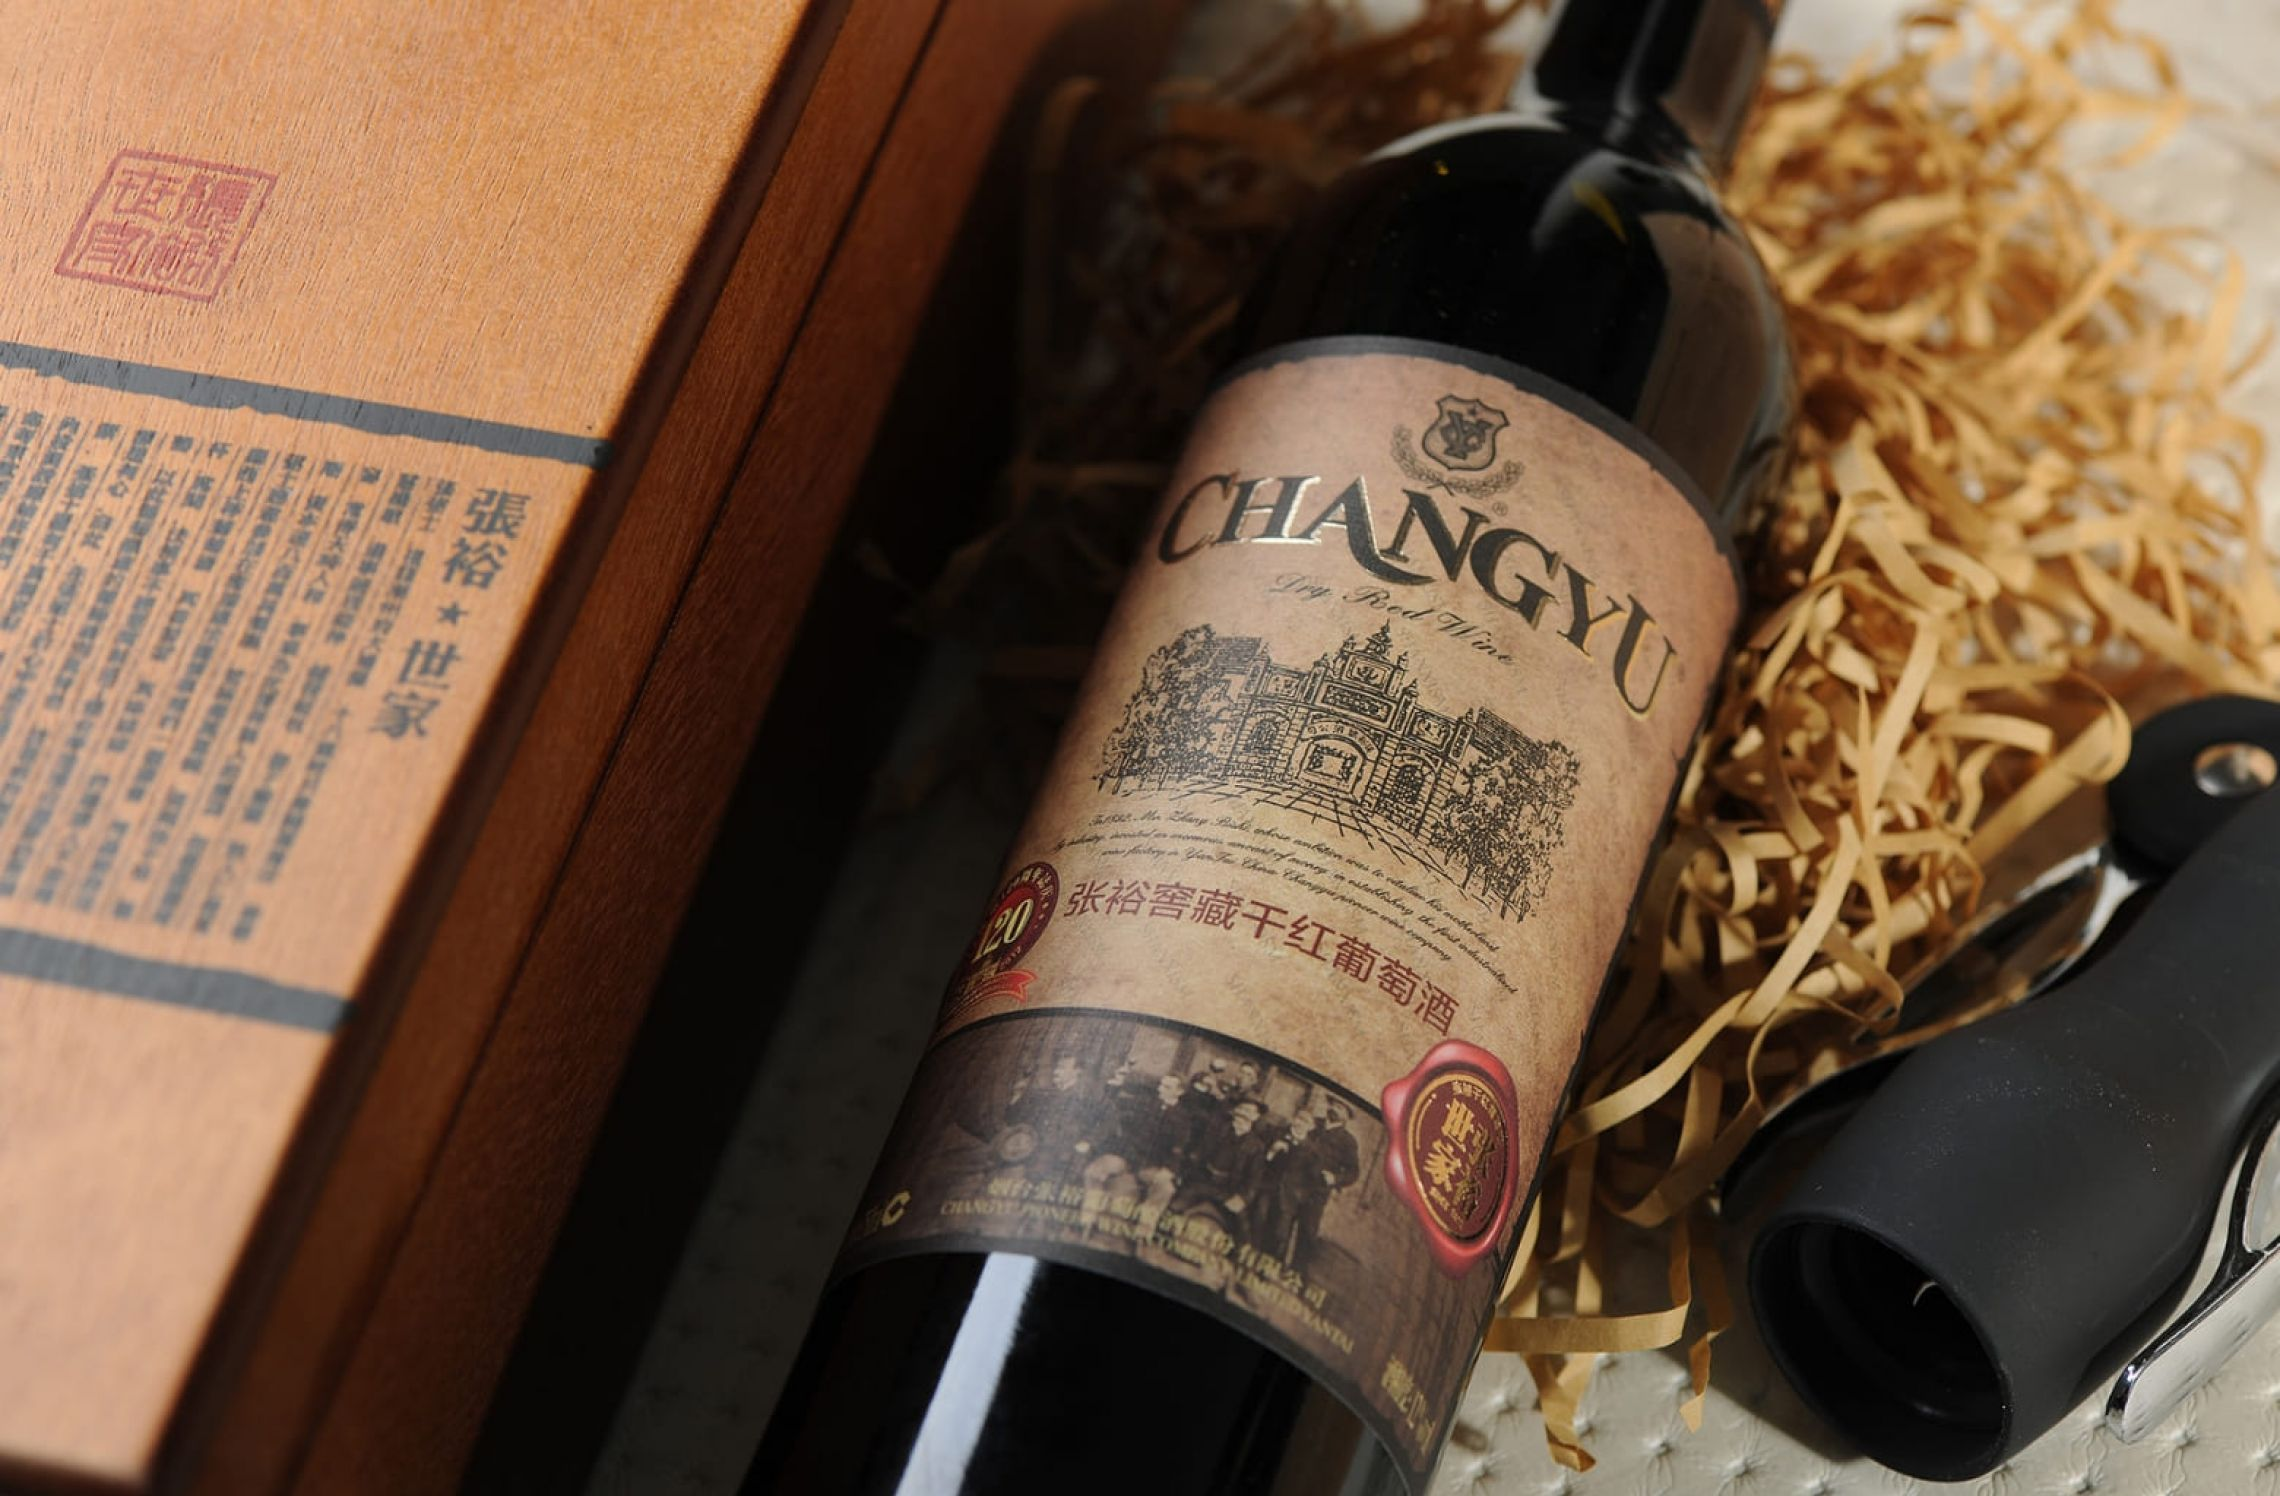 Photo for: The Appearance of Bona Fide Domestic Competition in the Chinese Wine Market